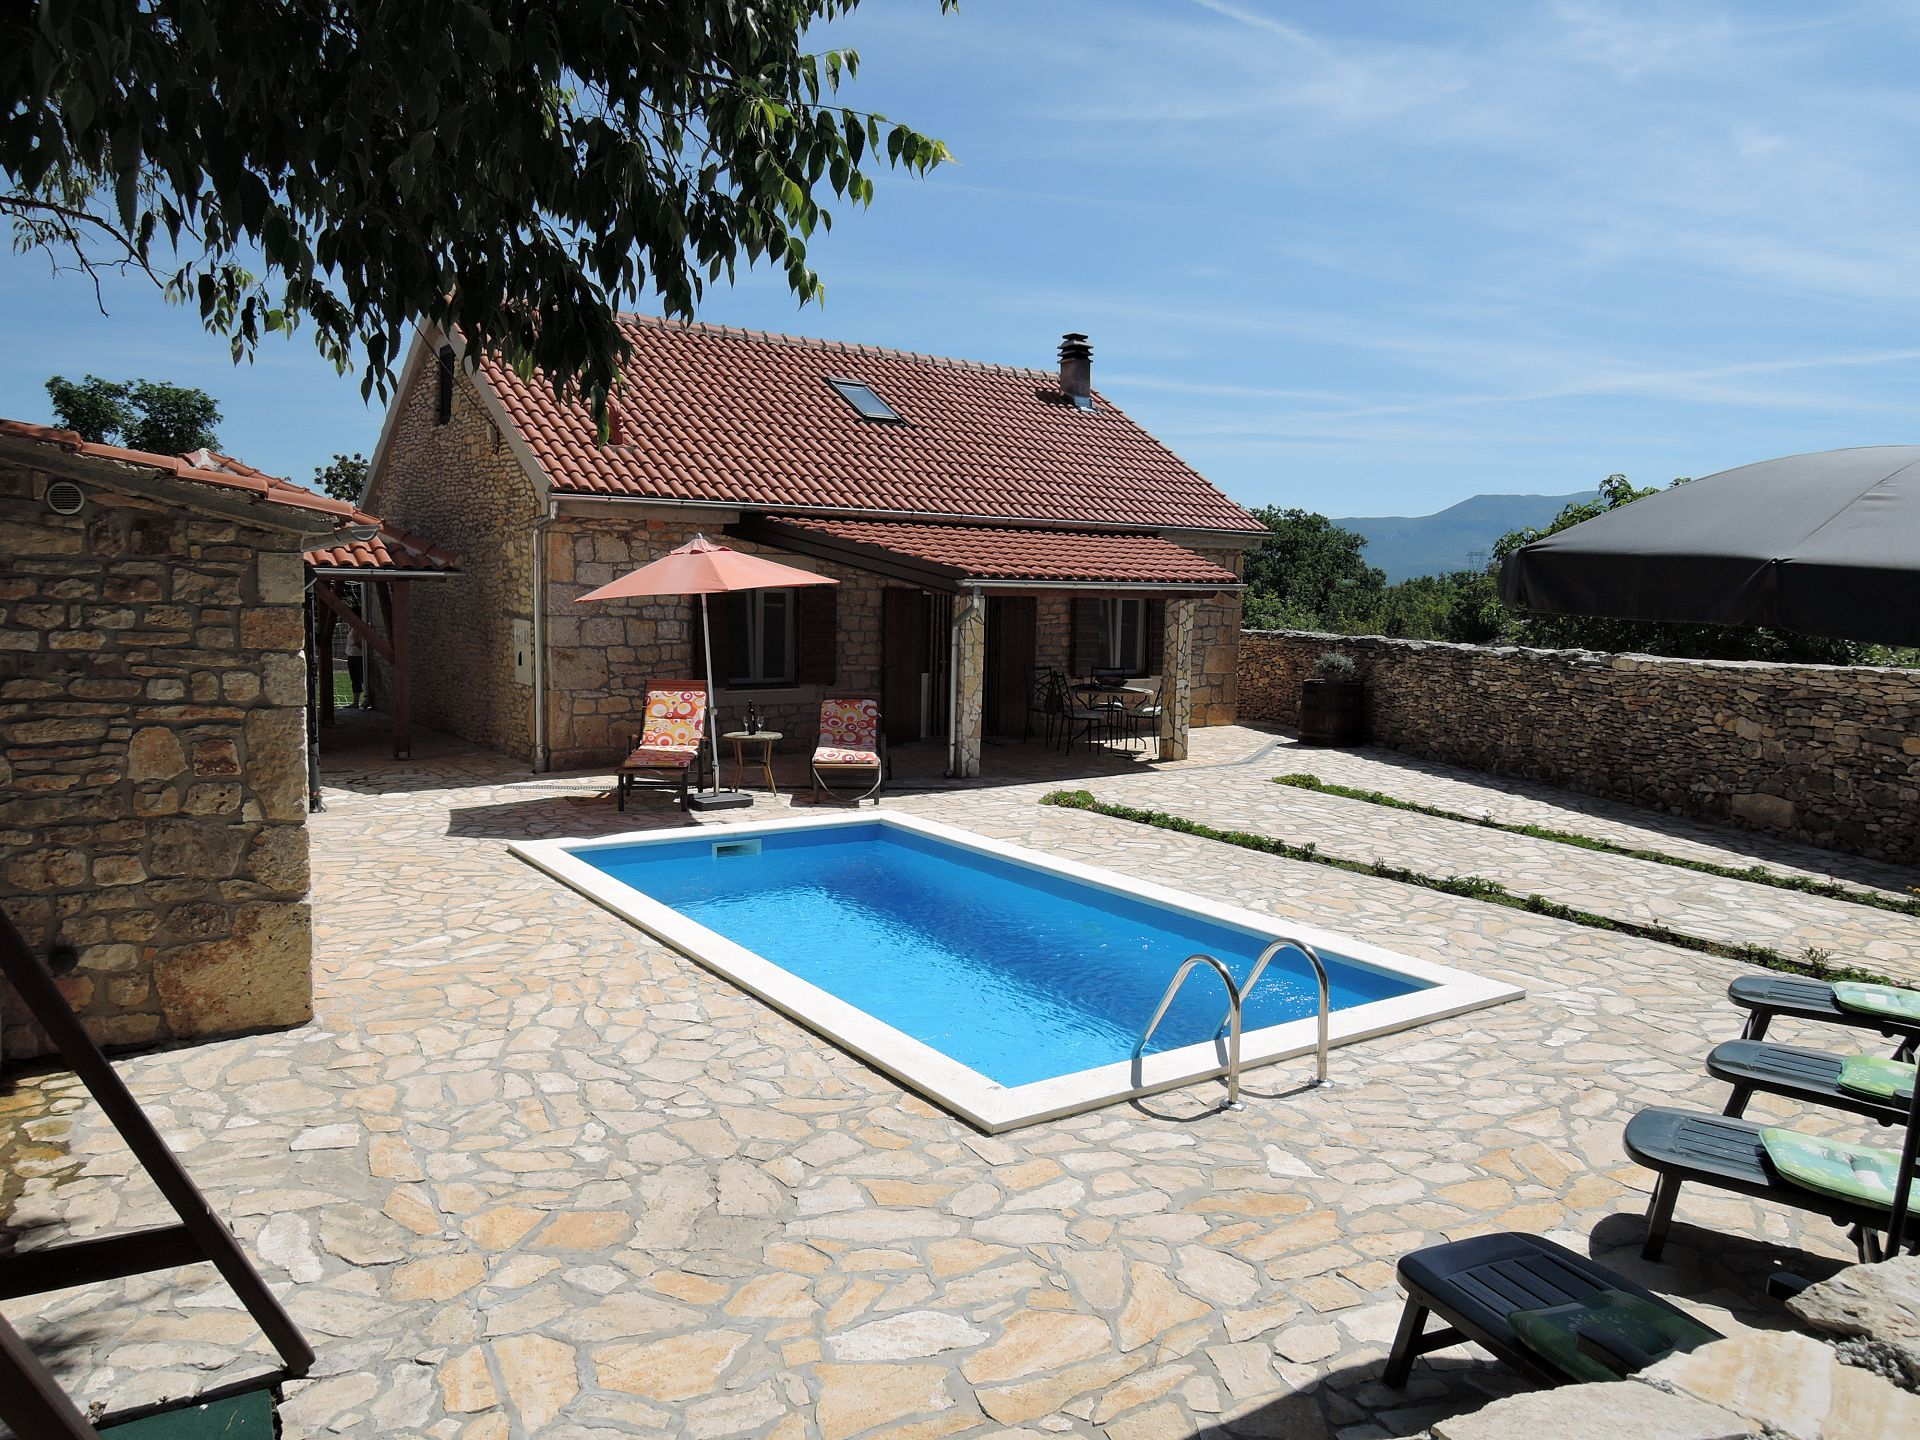 36411 - Drnis - Holiday houses, villas Croatia